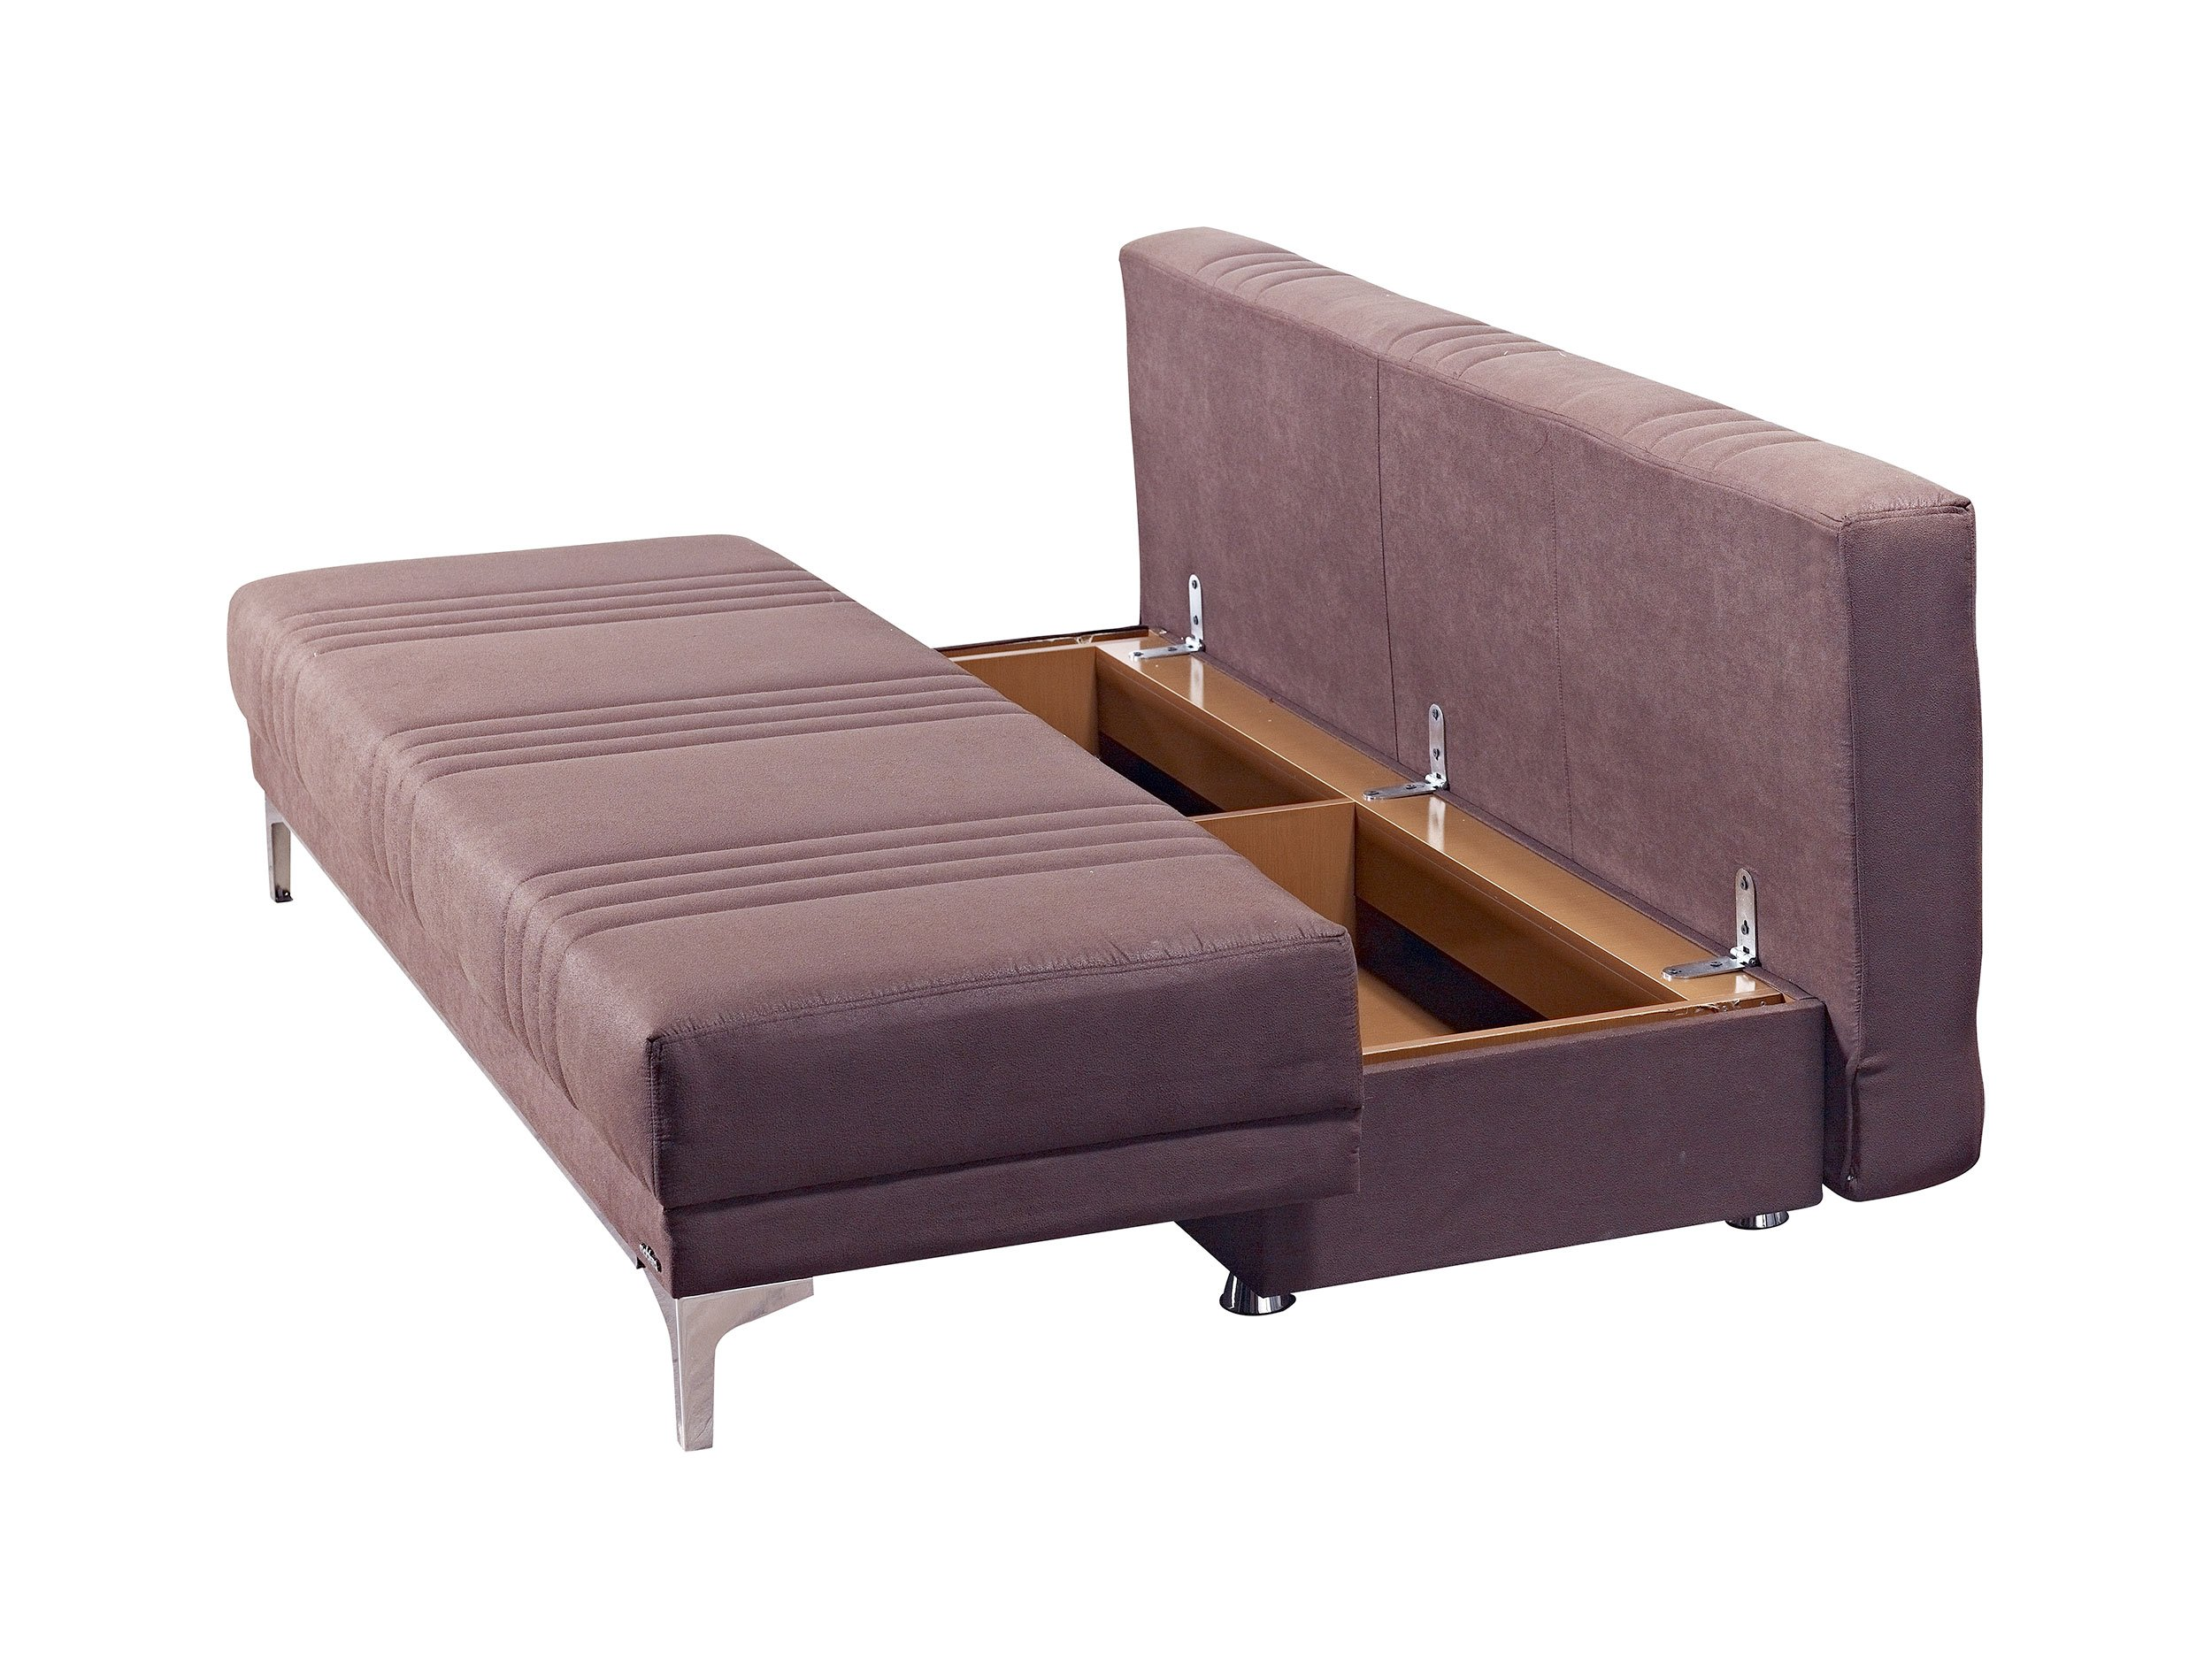 Queen size sofa beds sofa cool queen bed mattress thesofa for Queen size sofa bed dimensions